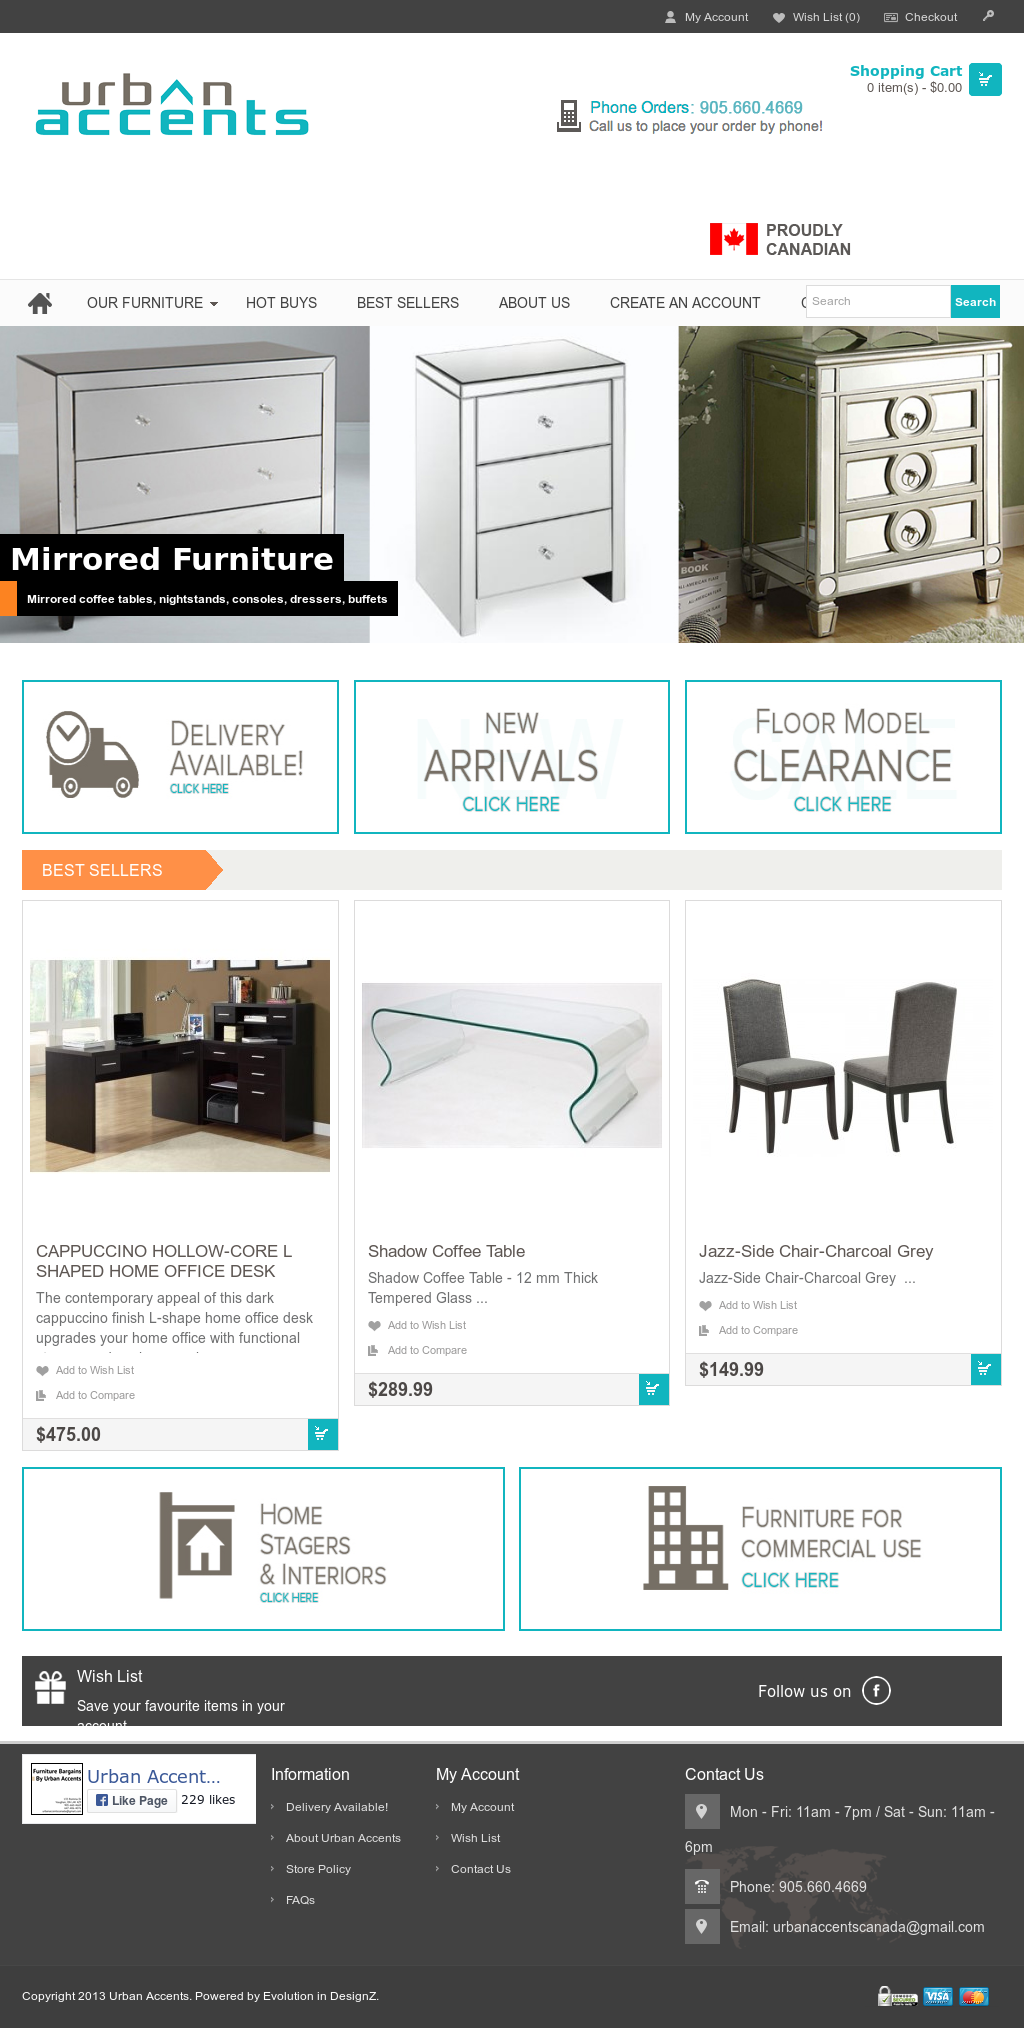 urban accents furniture. Urban Accents Toronto Website History Furniture I